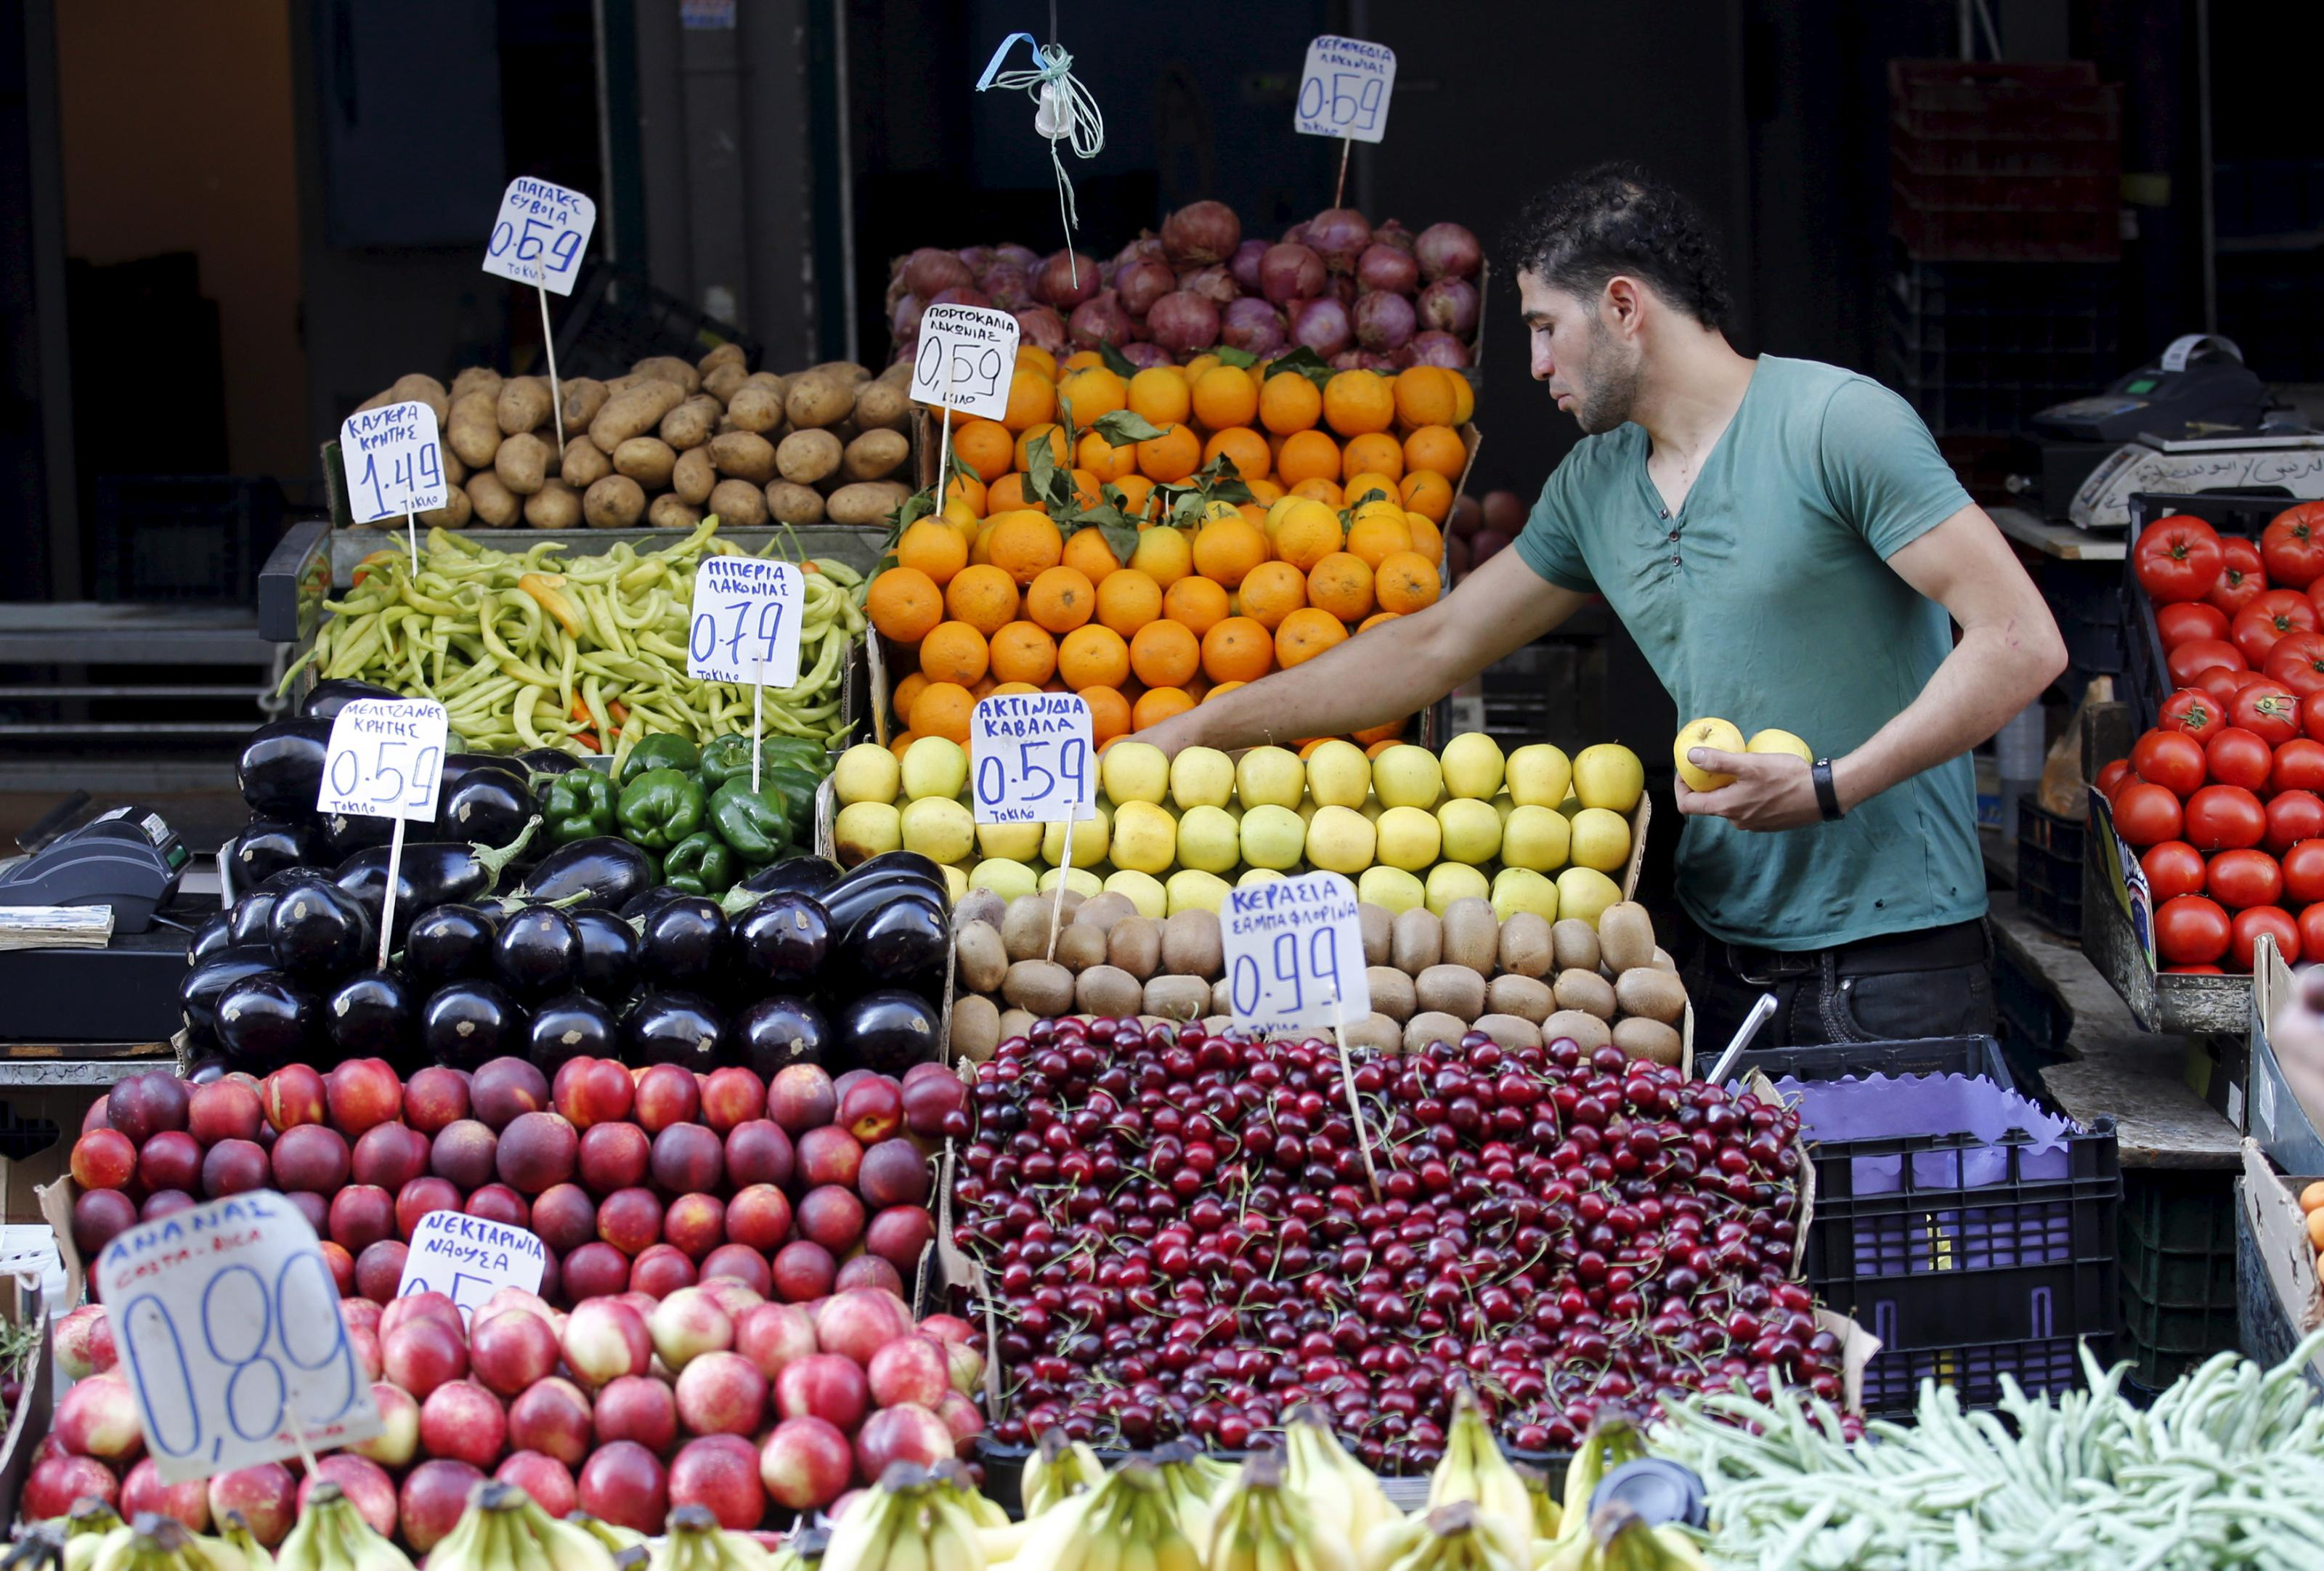 A vendor displays fruits in his shop in a local market in central Athens, Greece.